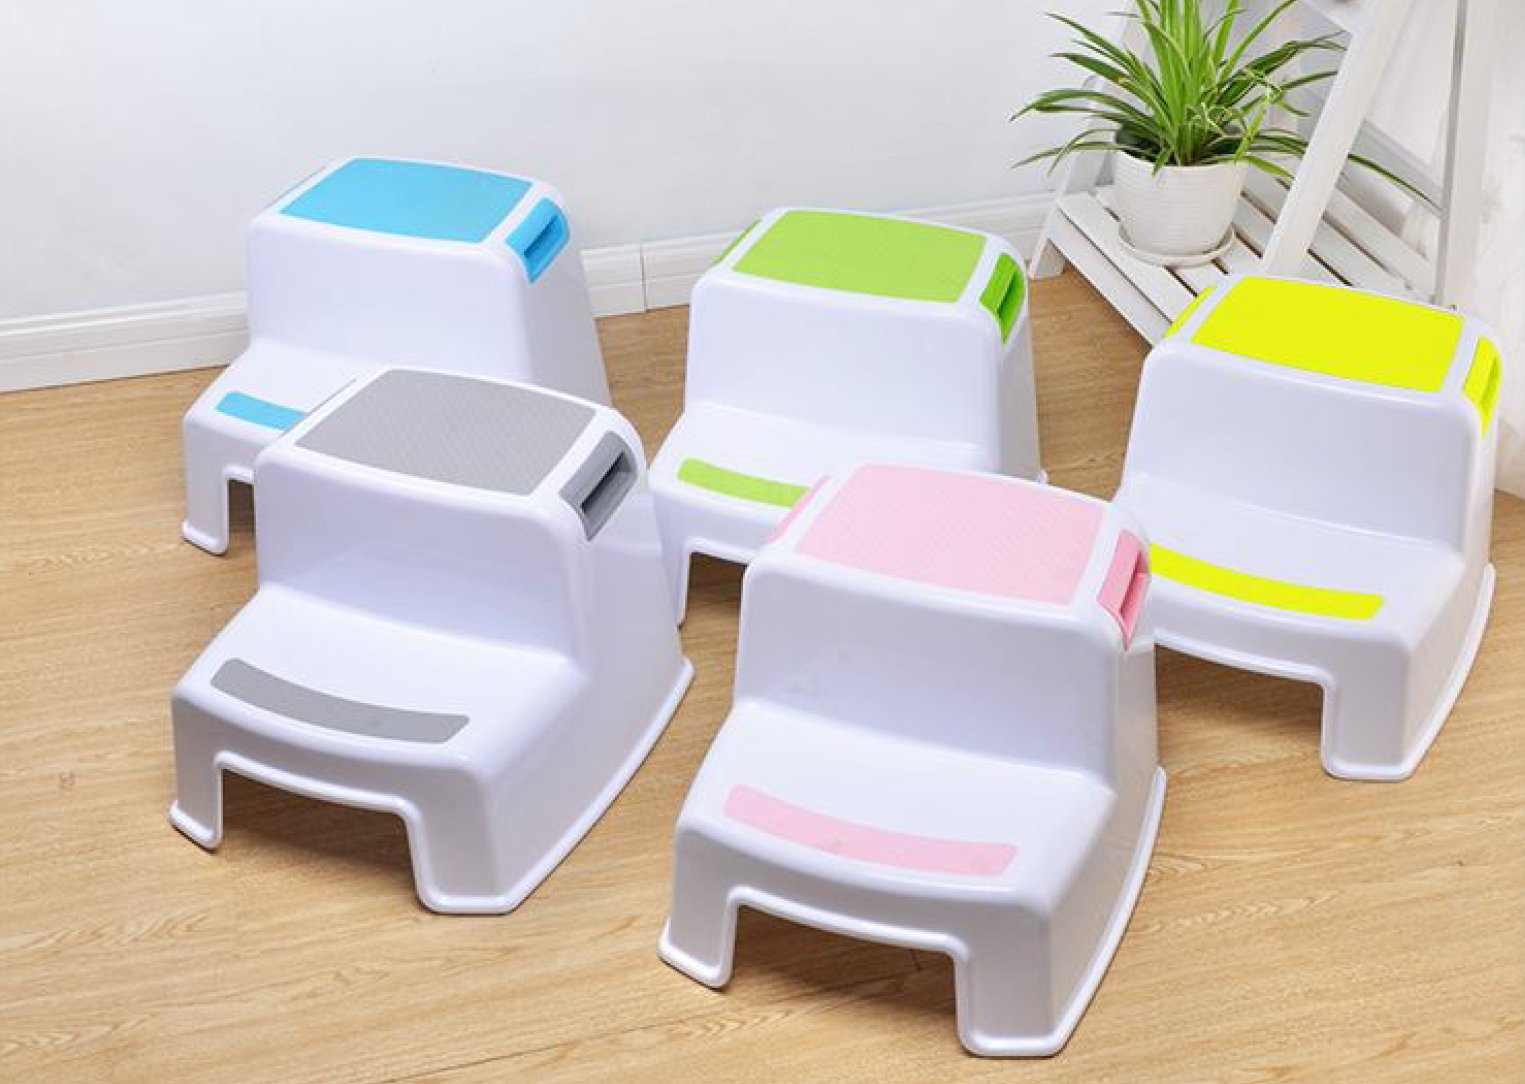 Swell Buy Toddlers And Childs Stools Footstep Dual Heights Steps Dailytribune Chair Design For Home Dailytribuneorg